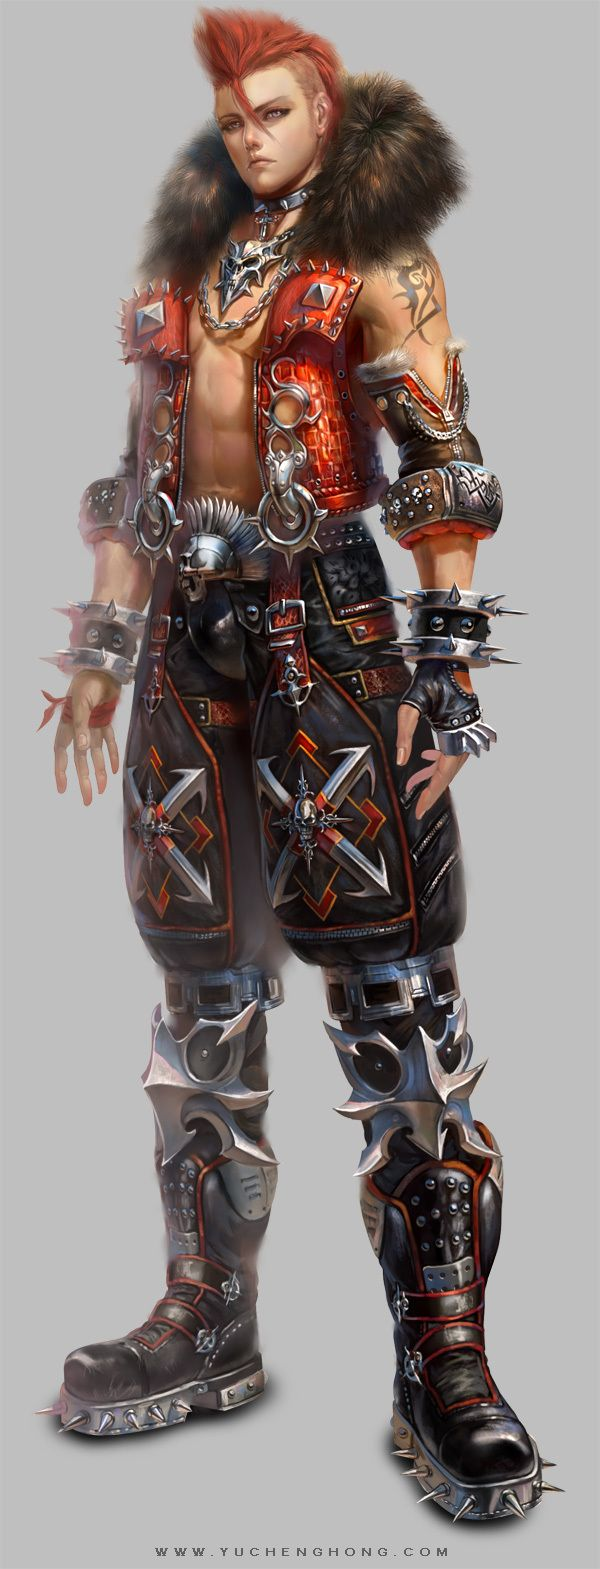 Top 25 ideas about Game Character Design on Pinterest | Game ...